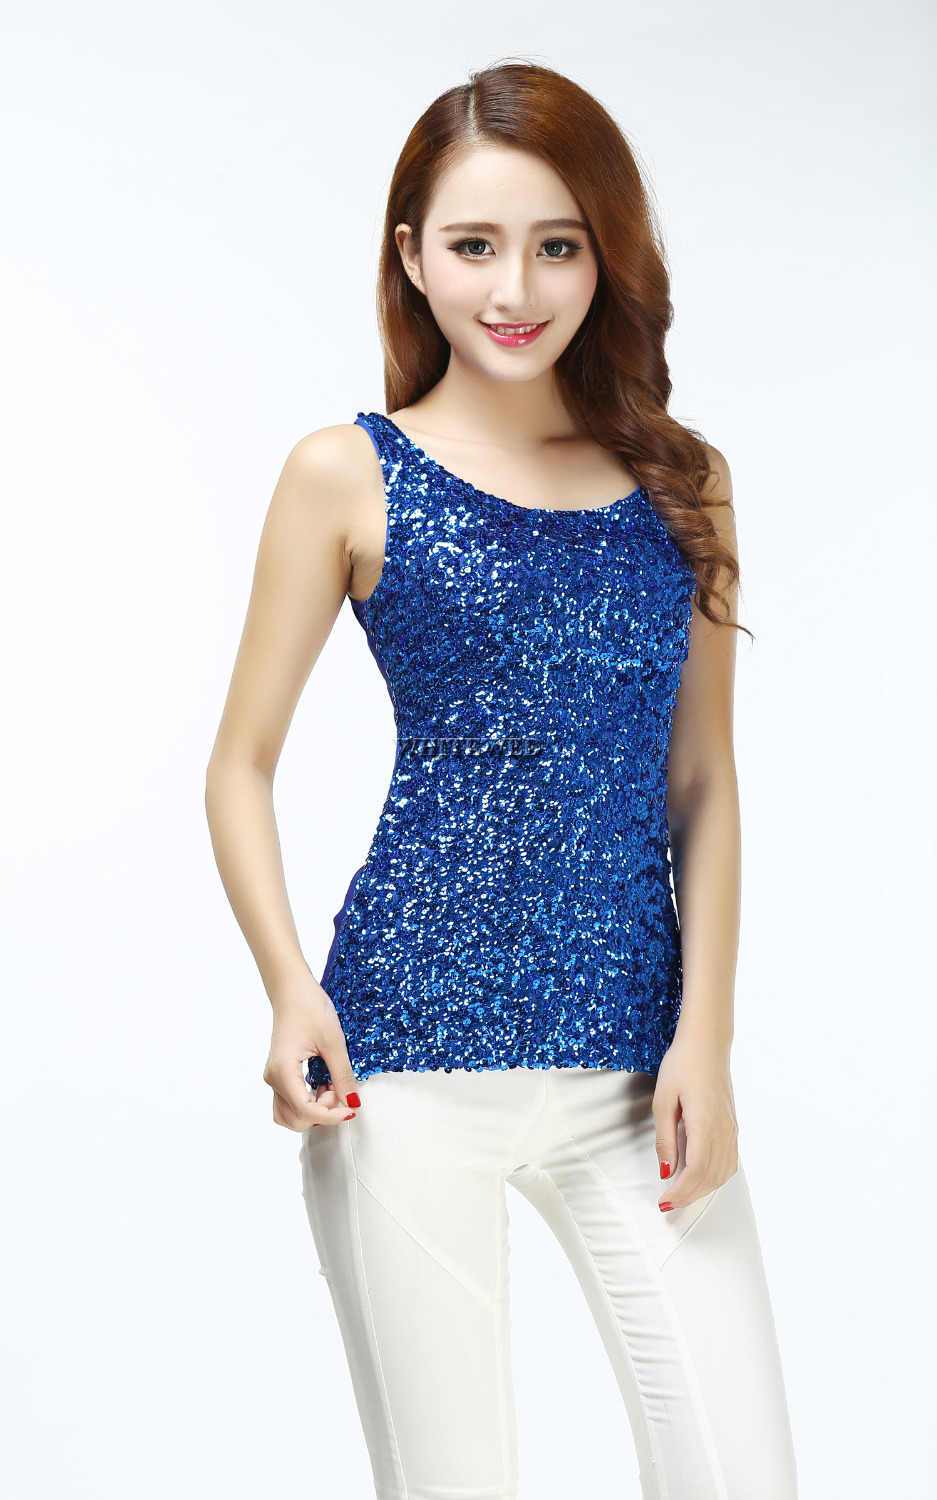 fd1a0a0079 Sparkly Glitter Sequin embellished knitted slim scoop tank top for Women  dance silver purple black blue White grey underwear